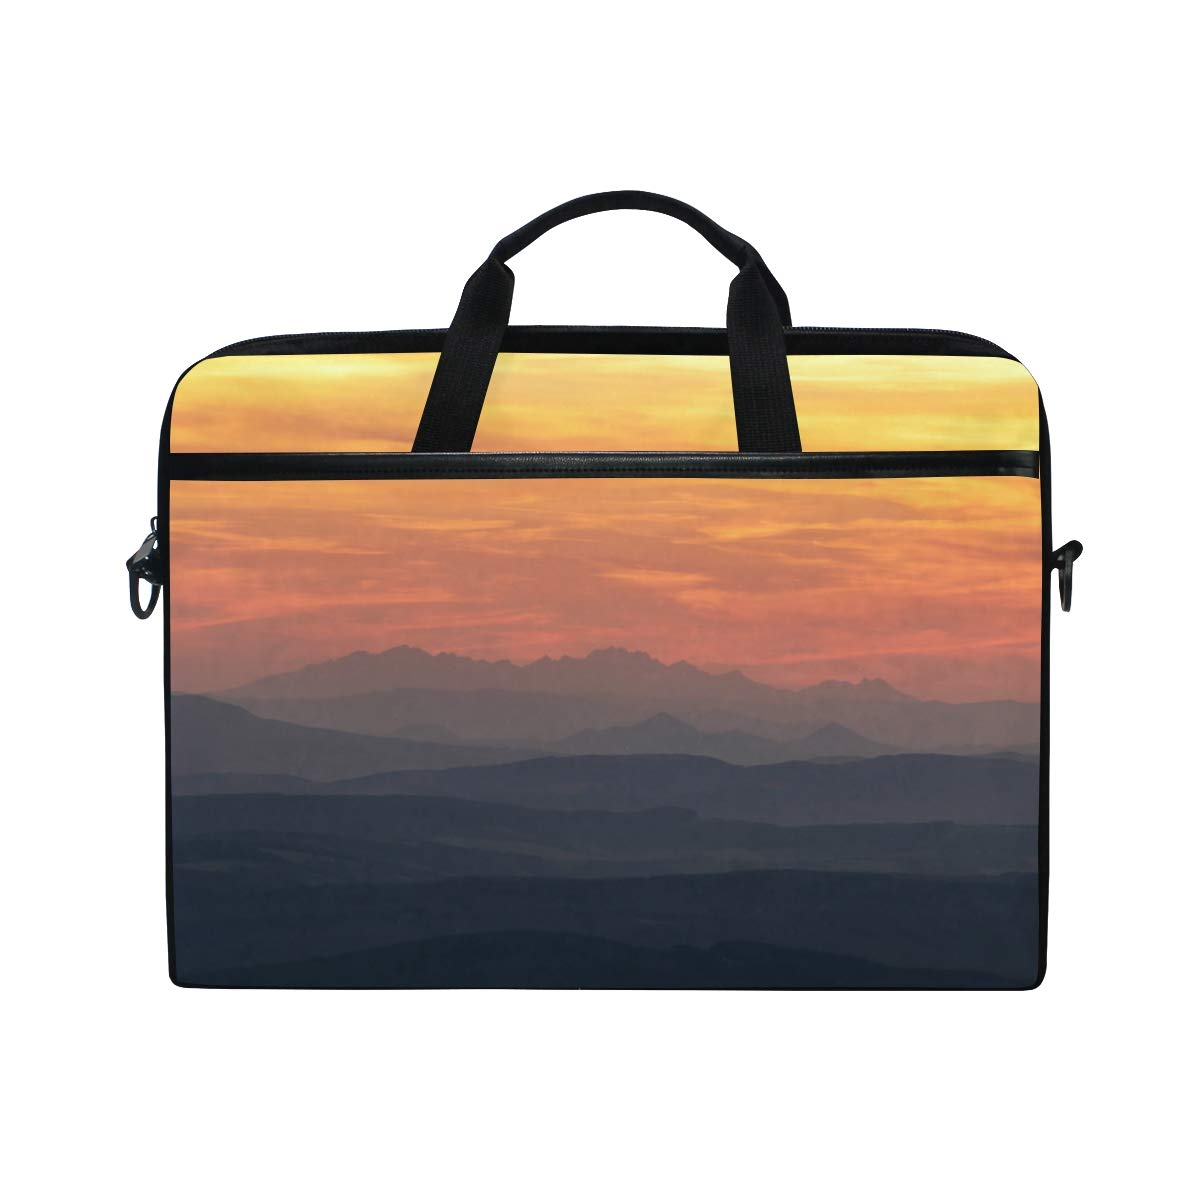 Suitable for 15 Inch Computers Slovakia View Mens and Womens Computer Bags Handbags Briefcases Shoulder Bags